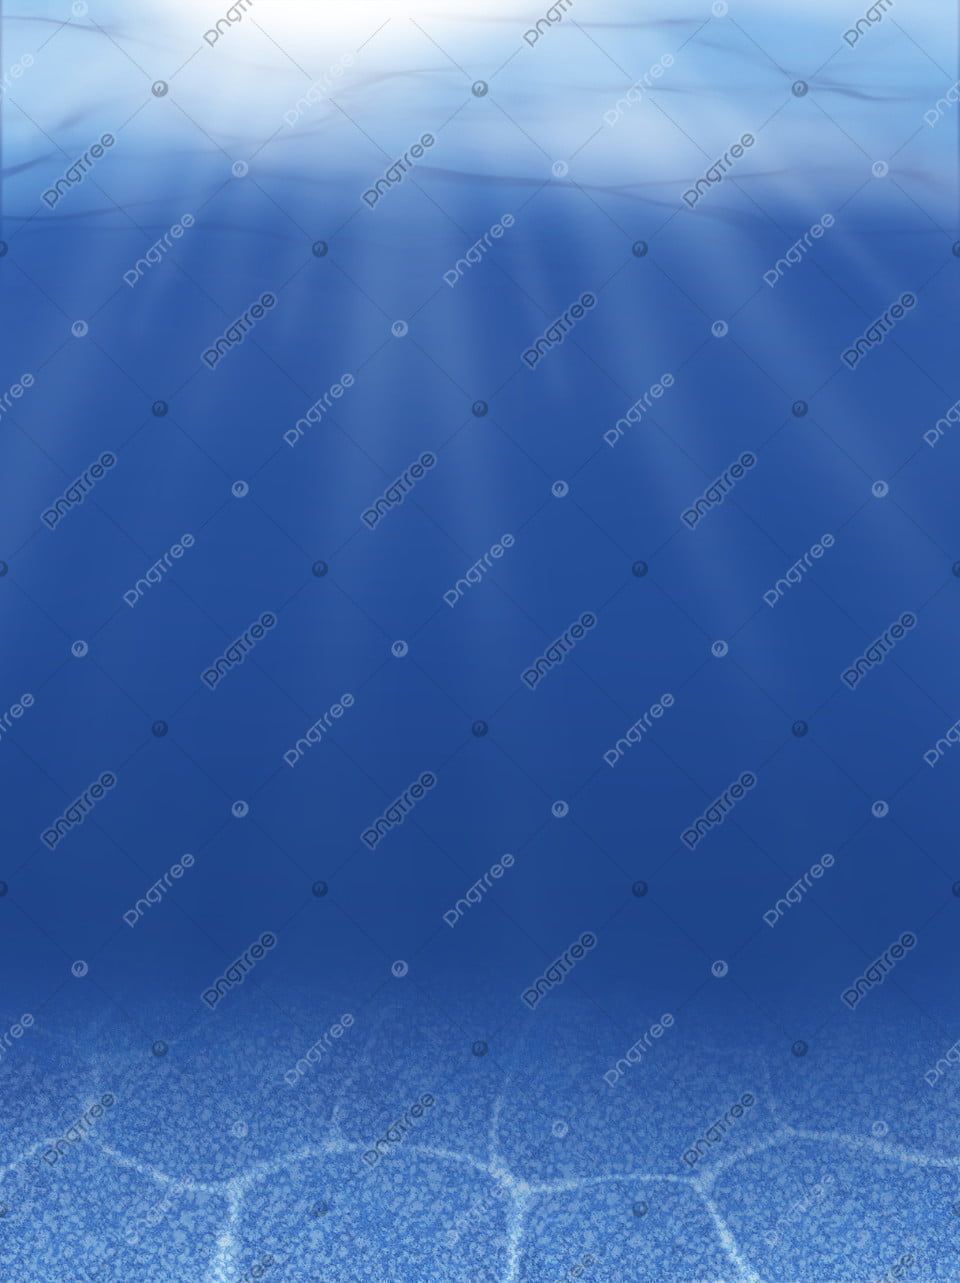 Background Air Laut : background, Ocean, Water, Pattern, Background, Picture,, Picture, Material,, Sunlight,, Light, Image, Download